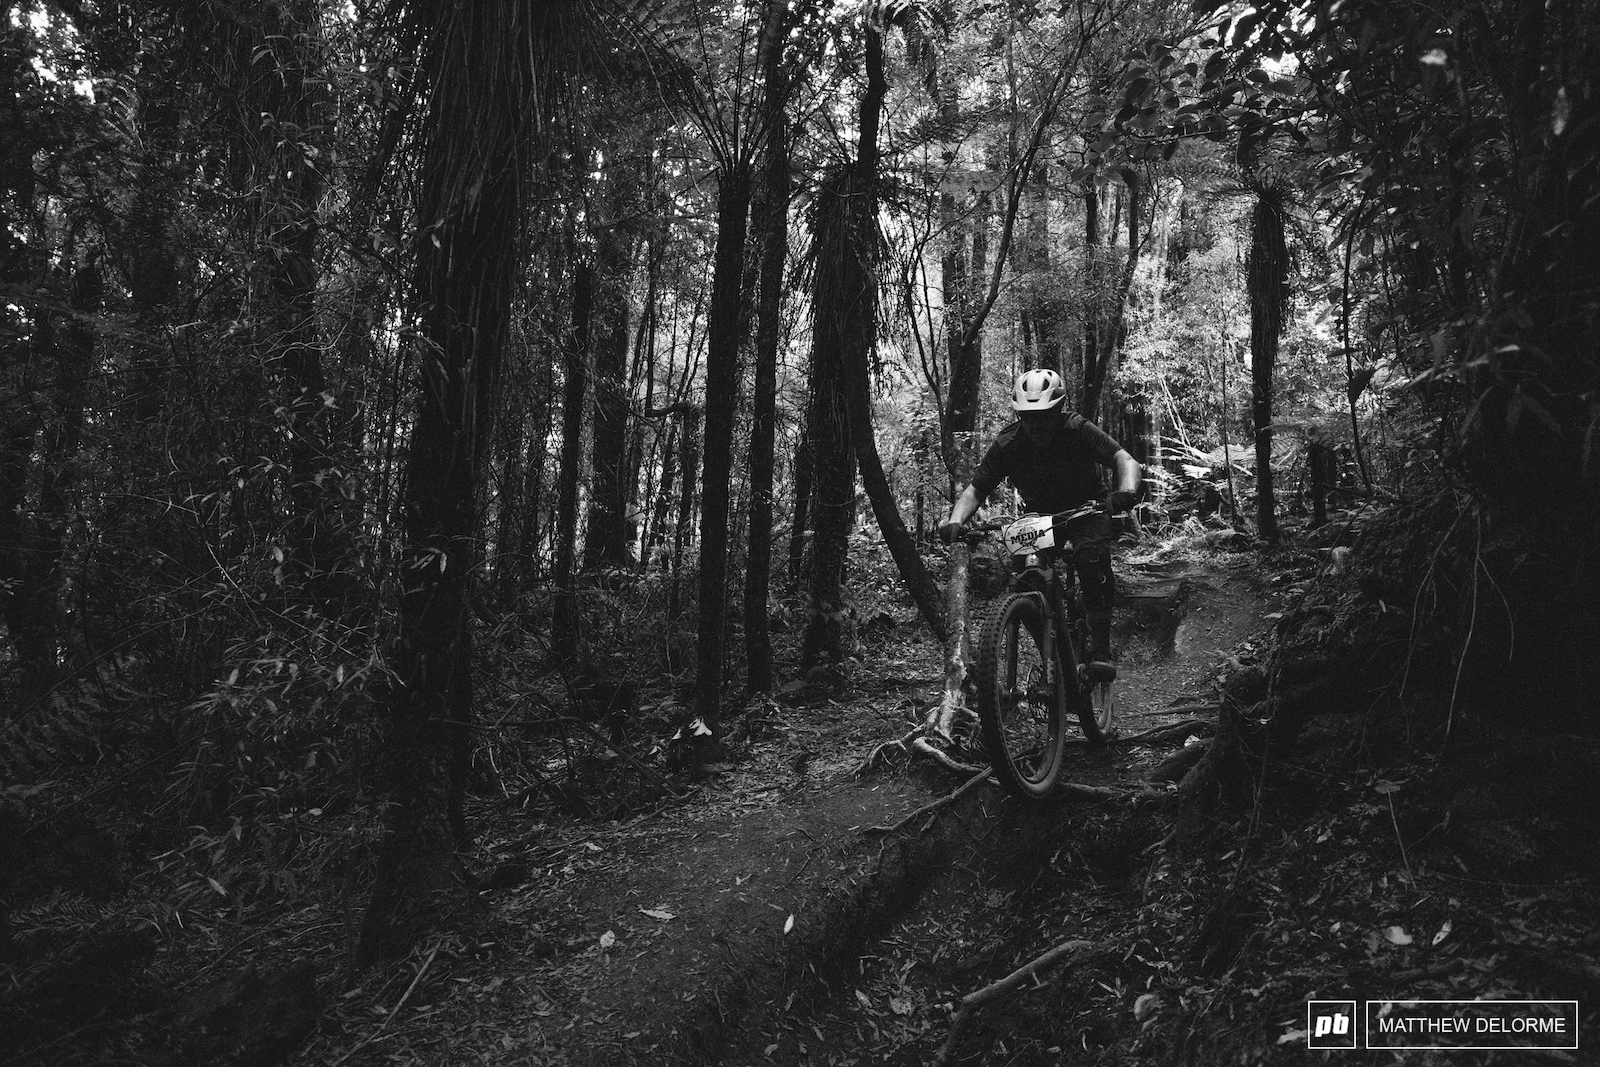 The woods are dark the roots are big and the tracks are mint. Round one will be a real treat.